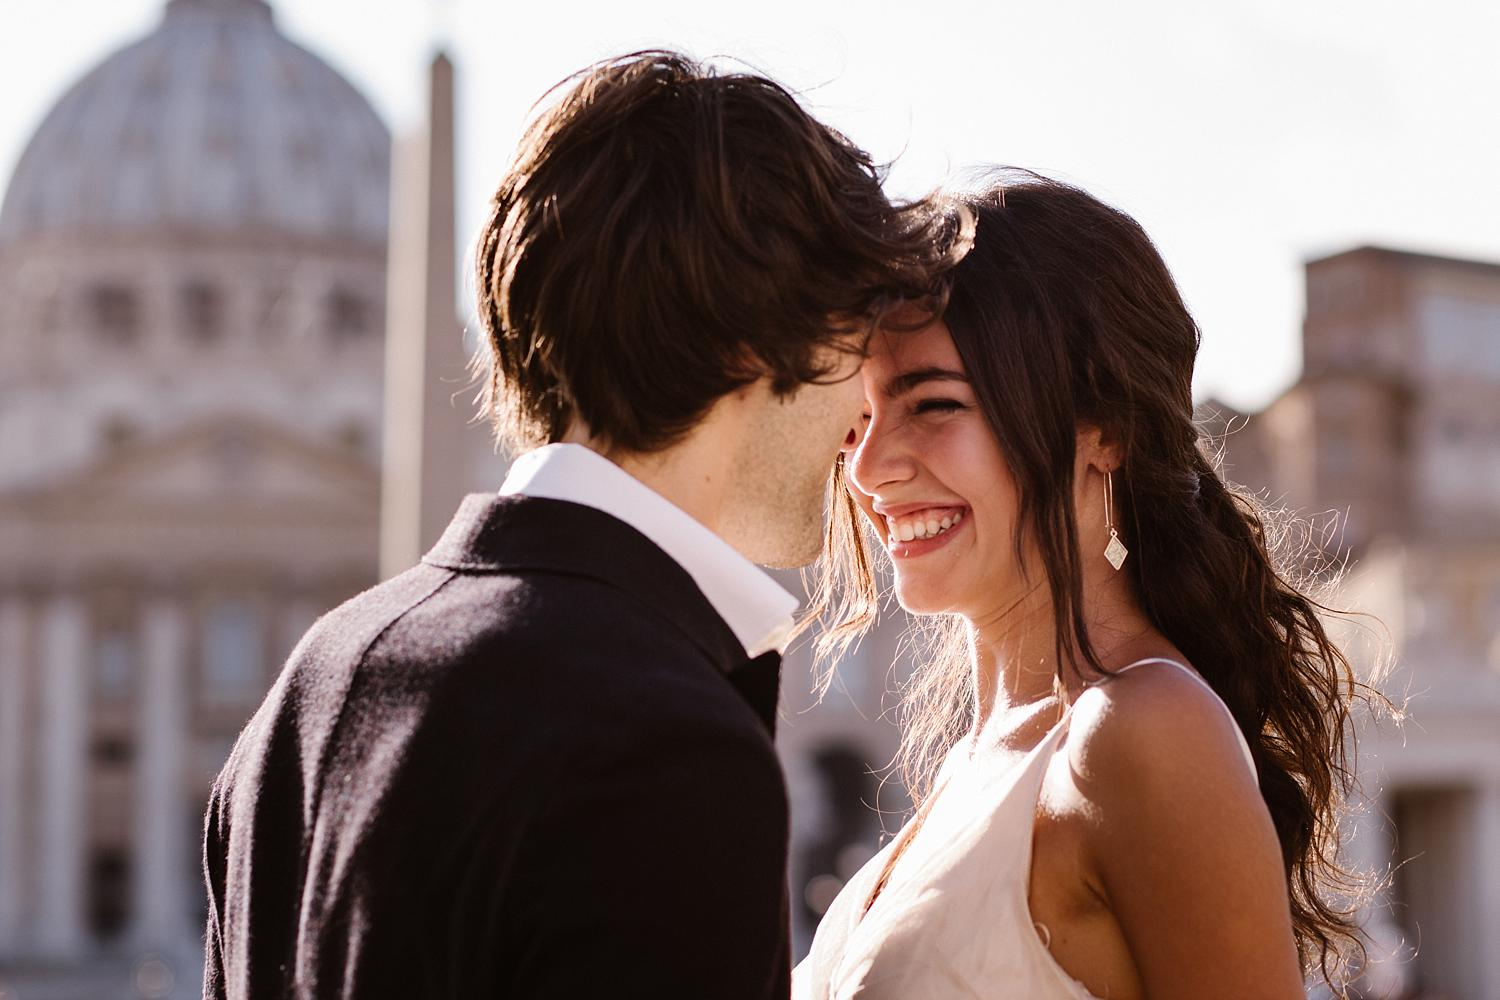 gs weddingphotographer rome 15 - Giulia & Simone - Elegant Couple Shooting in Rome